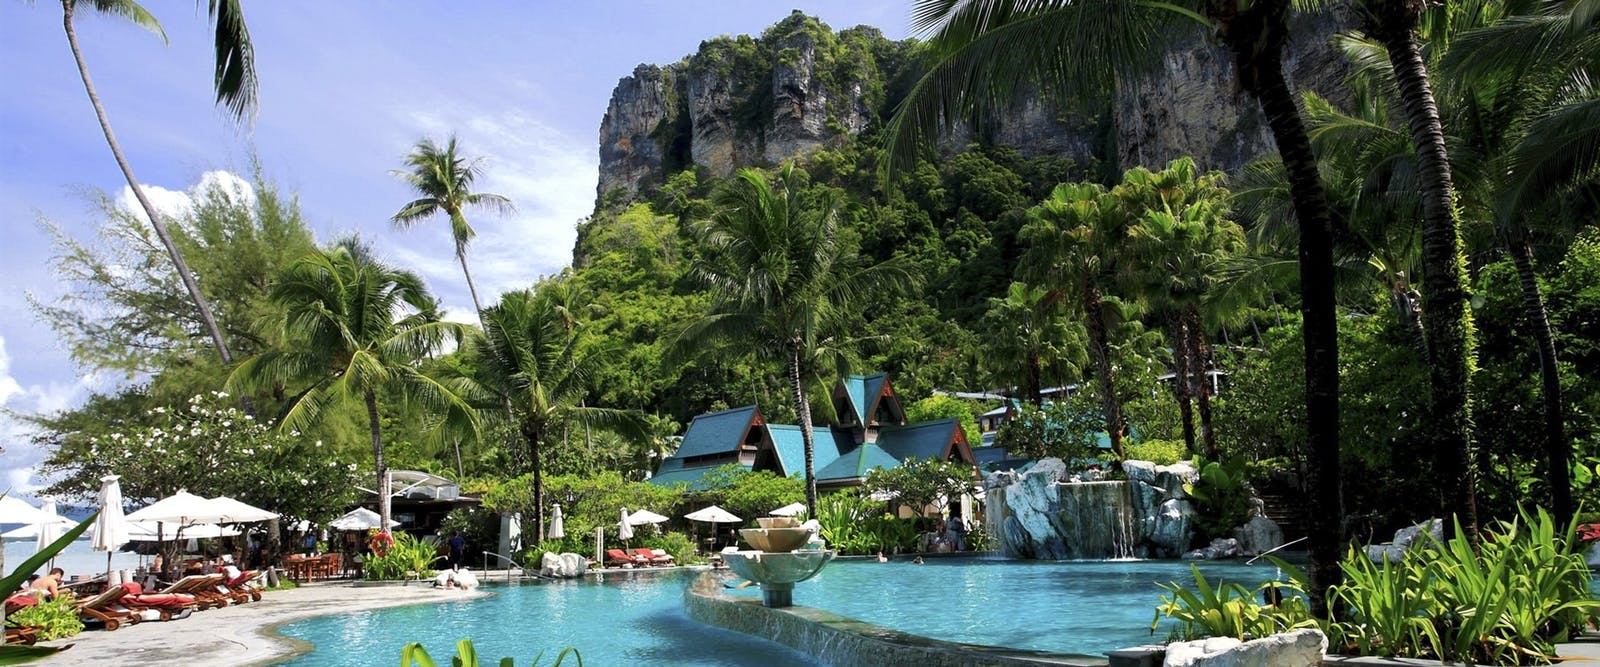 Swimming pool at Centara Grand Beach Resort & Villas Krabi